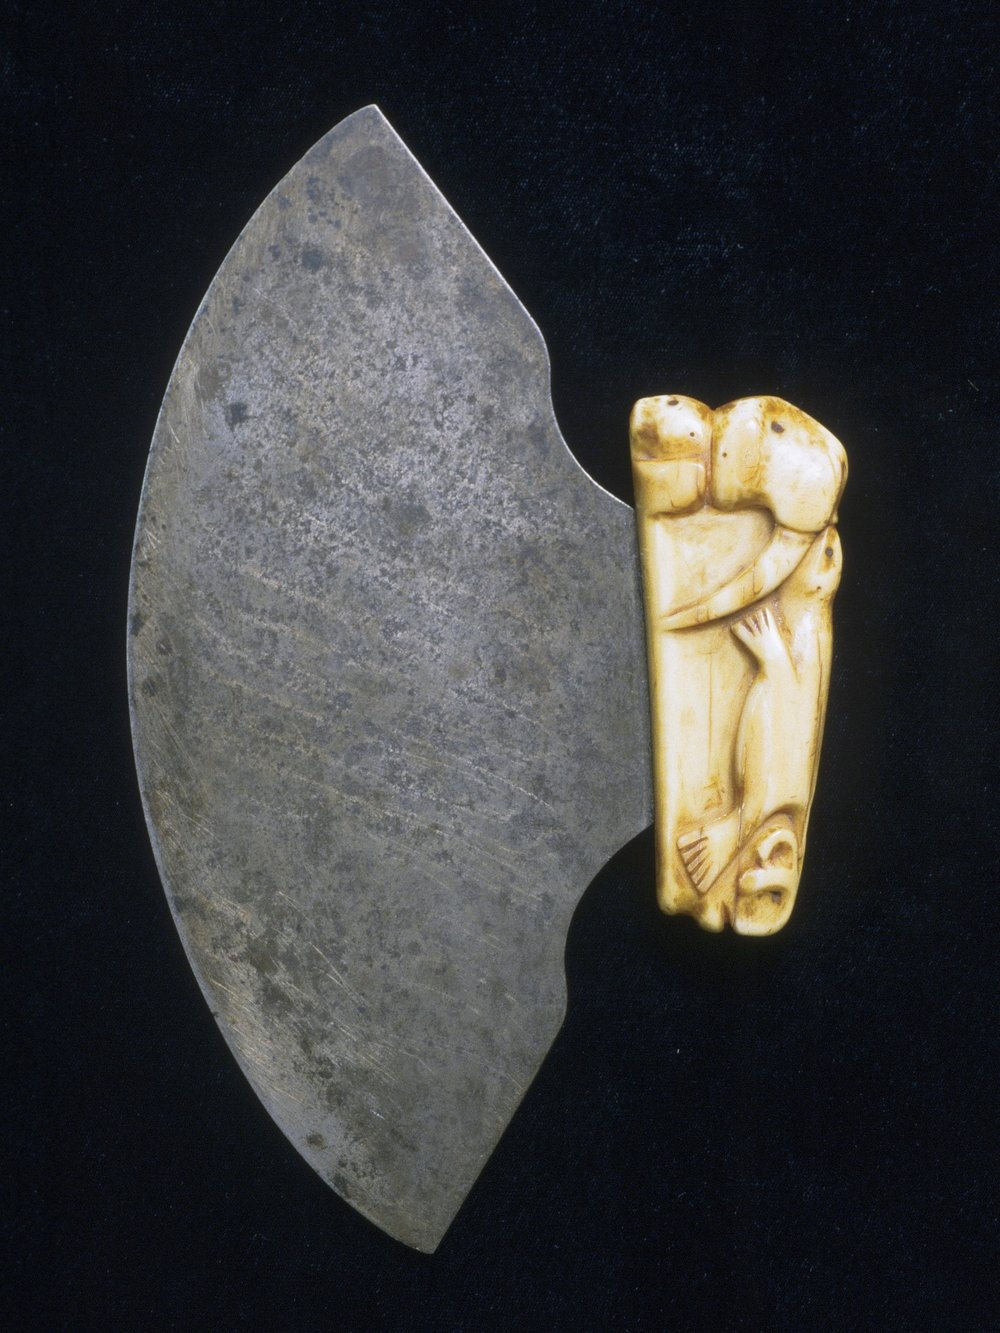 Tuthrak (Sophie) Nashalook, Iñupiaq, born 1880/1, ulu with a carved ivory handle depicting a bear, walrus and two seals, early 20th century. Ivory and steel, 5 1/8 × 8 1/4 × 13/16 in., Hood Museum of Art, Dartmouth College: Gift of Mrs. Levi Browning; 168.97.24526.